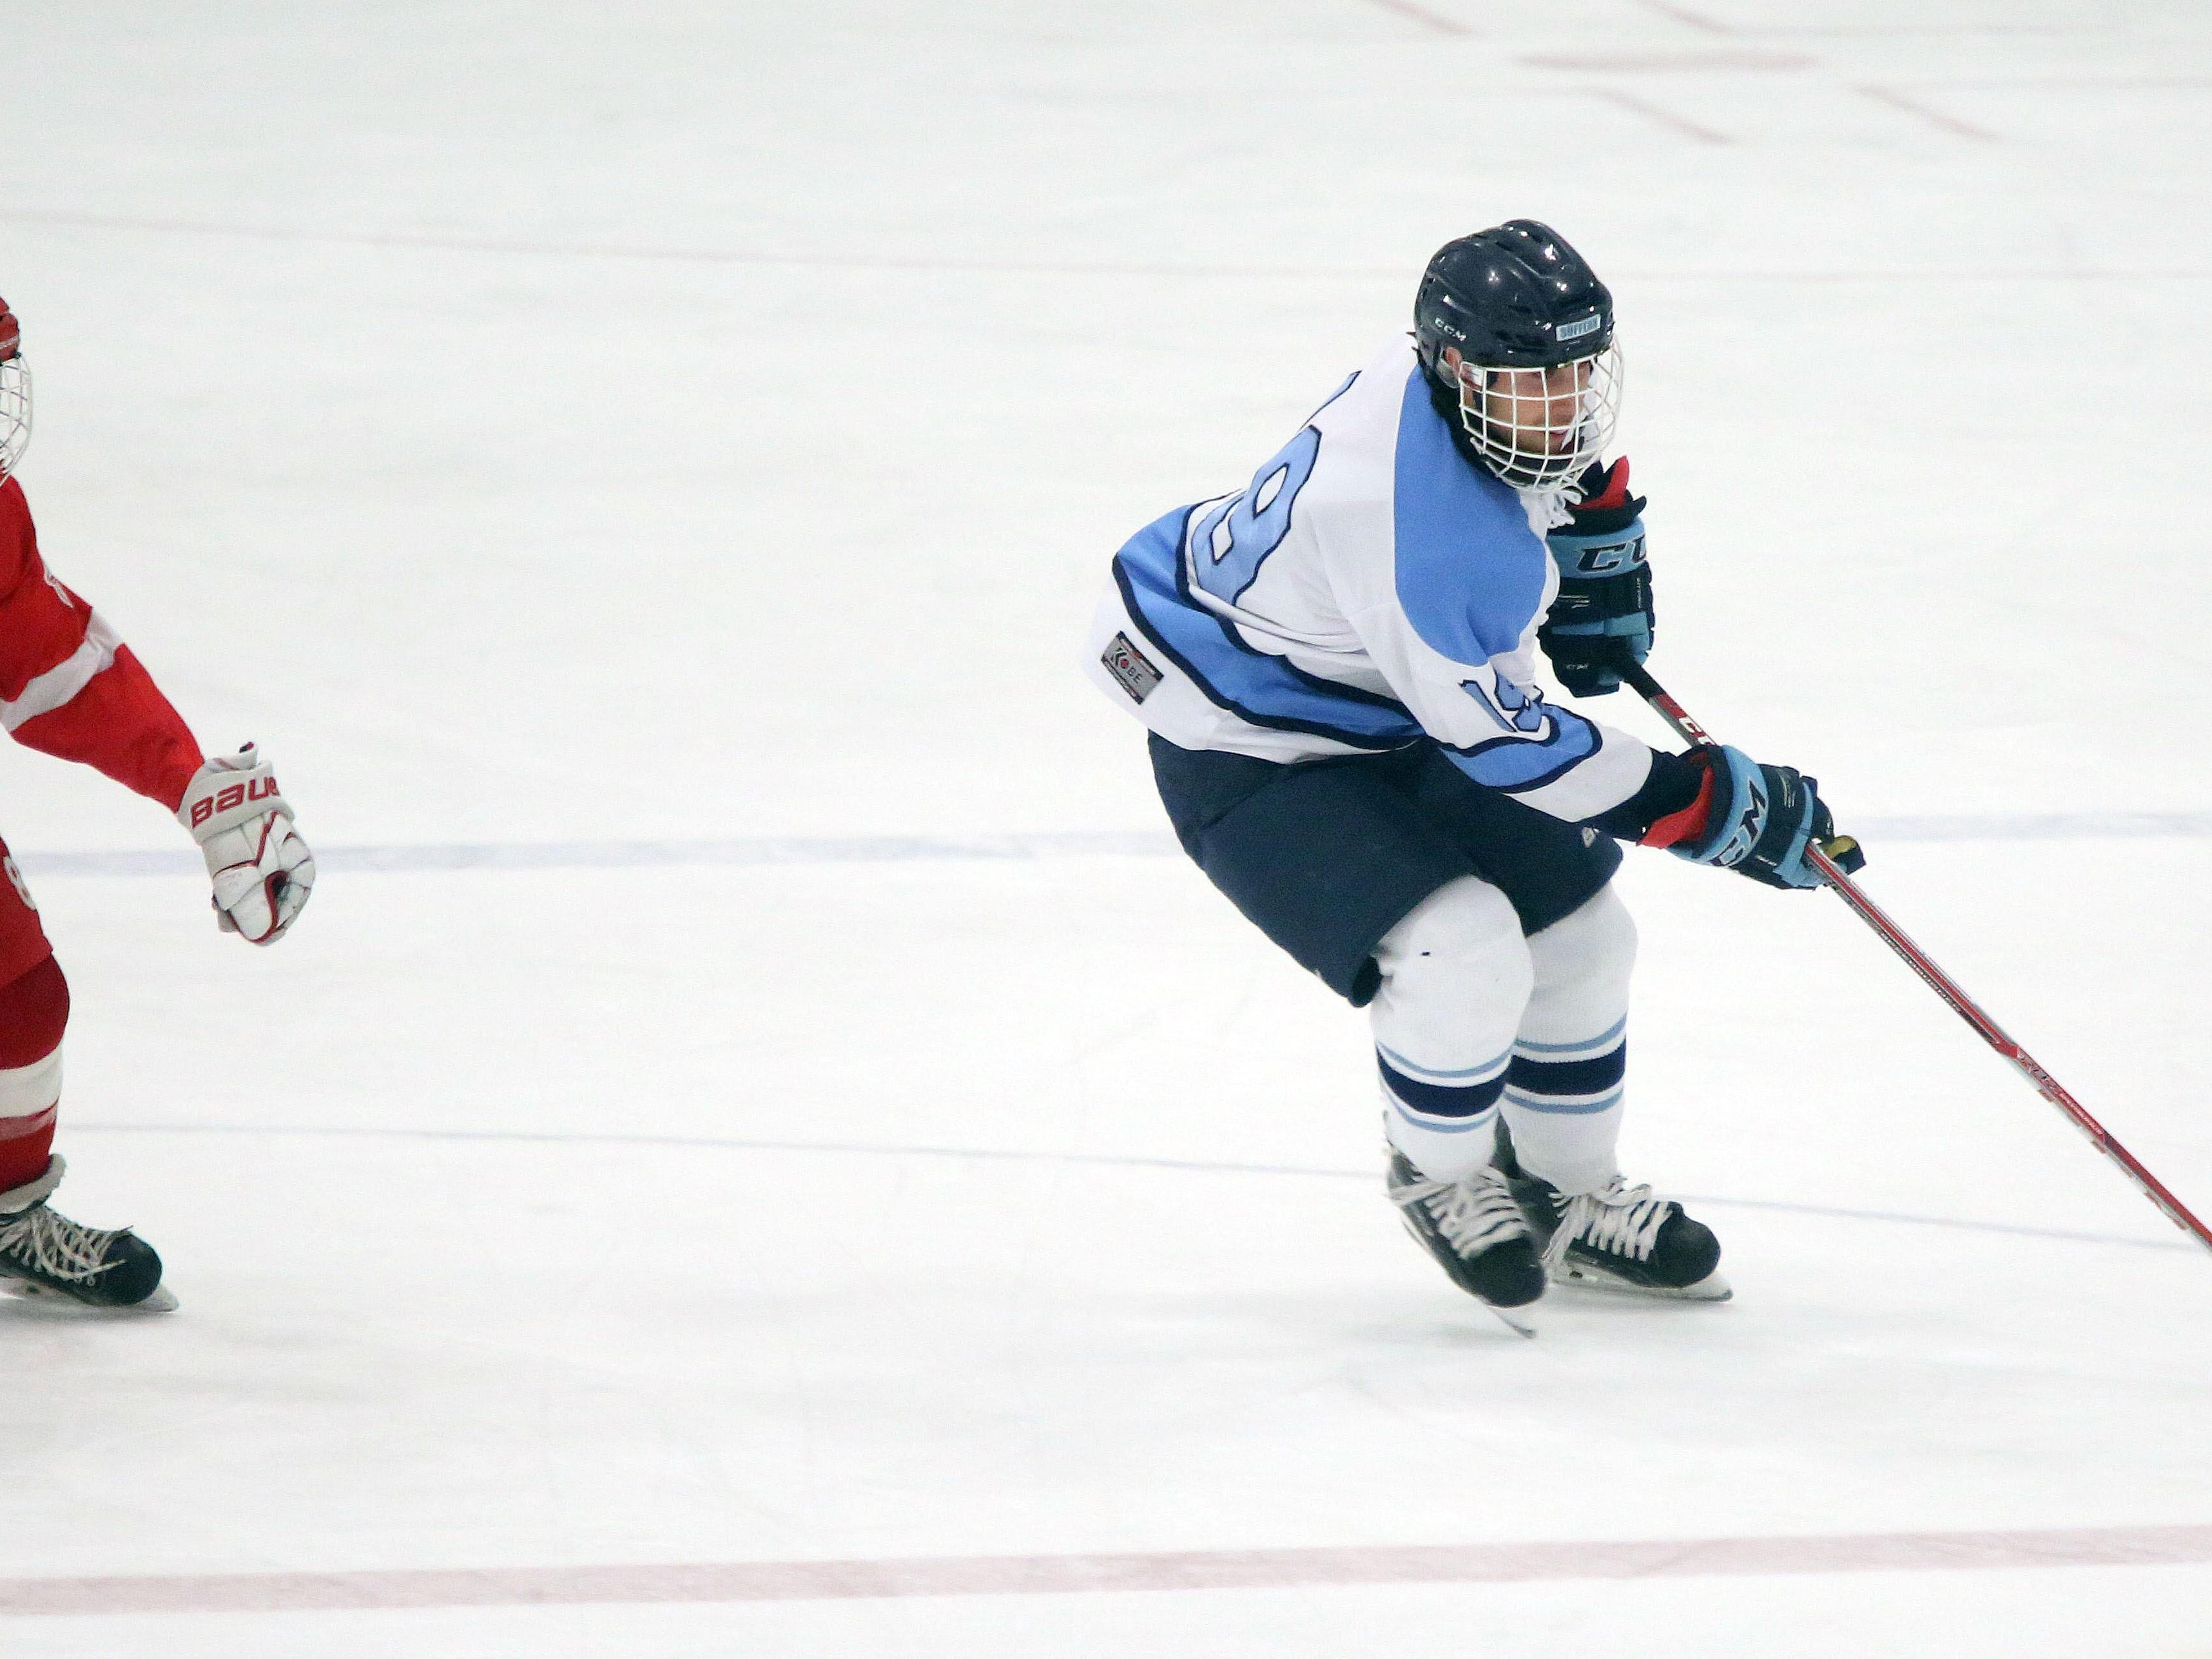 Suffern's Troy Daniels (19) pushes the puck past North Rockland's Justin Miklos (8) in the first period during the first period Section 1 Division 1 semifinal hockey at the Sport-O-Rama in Monsey at Feb. 26, 2016.